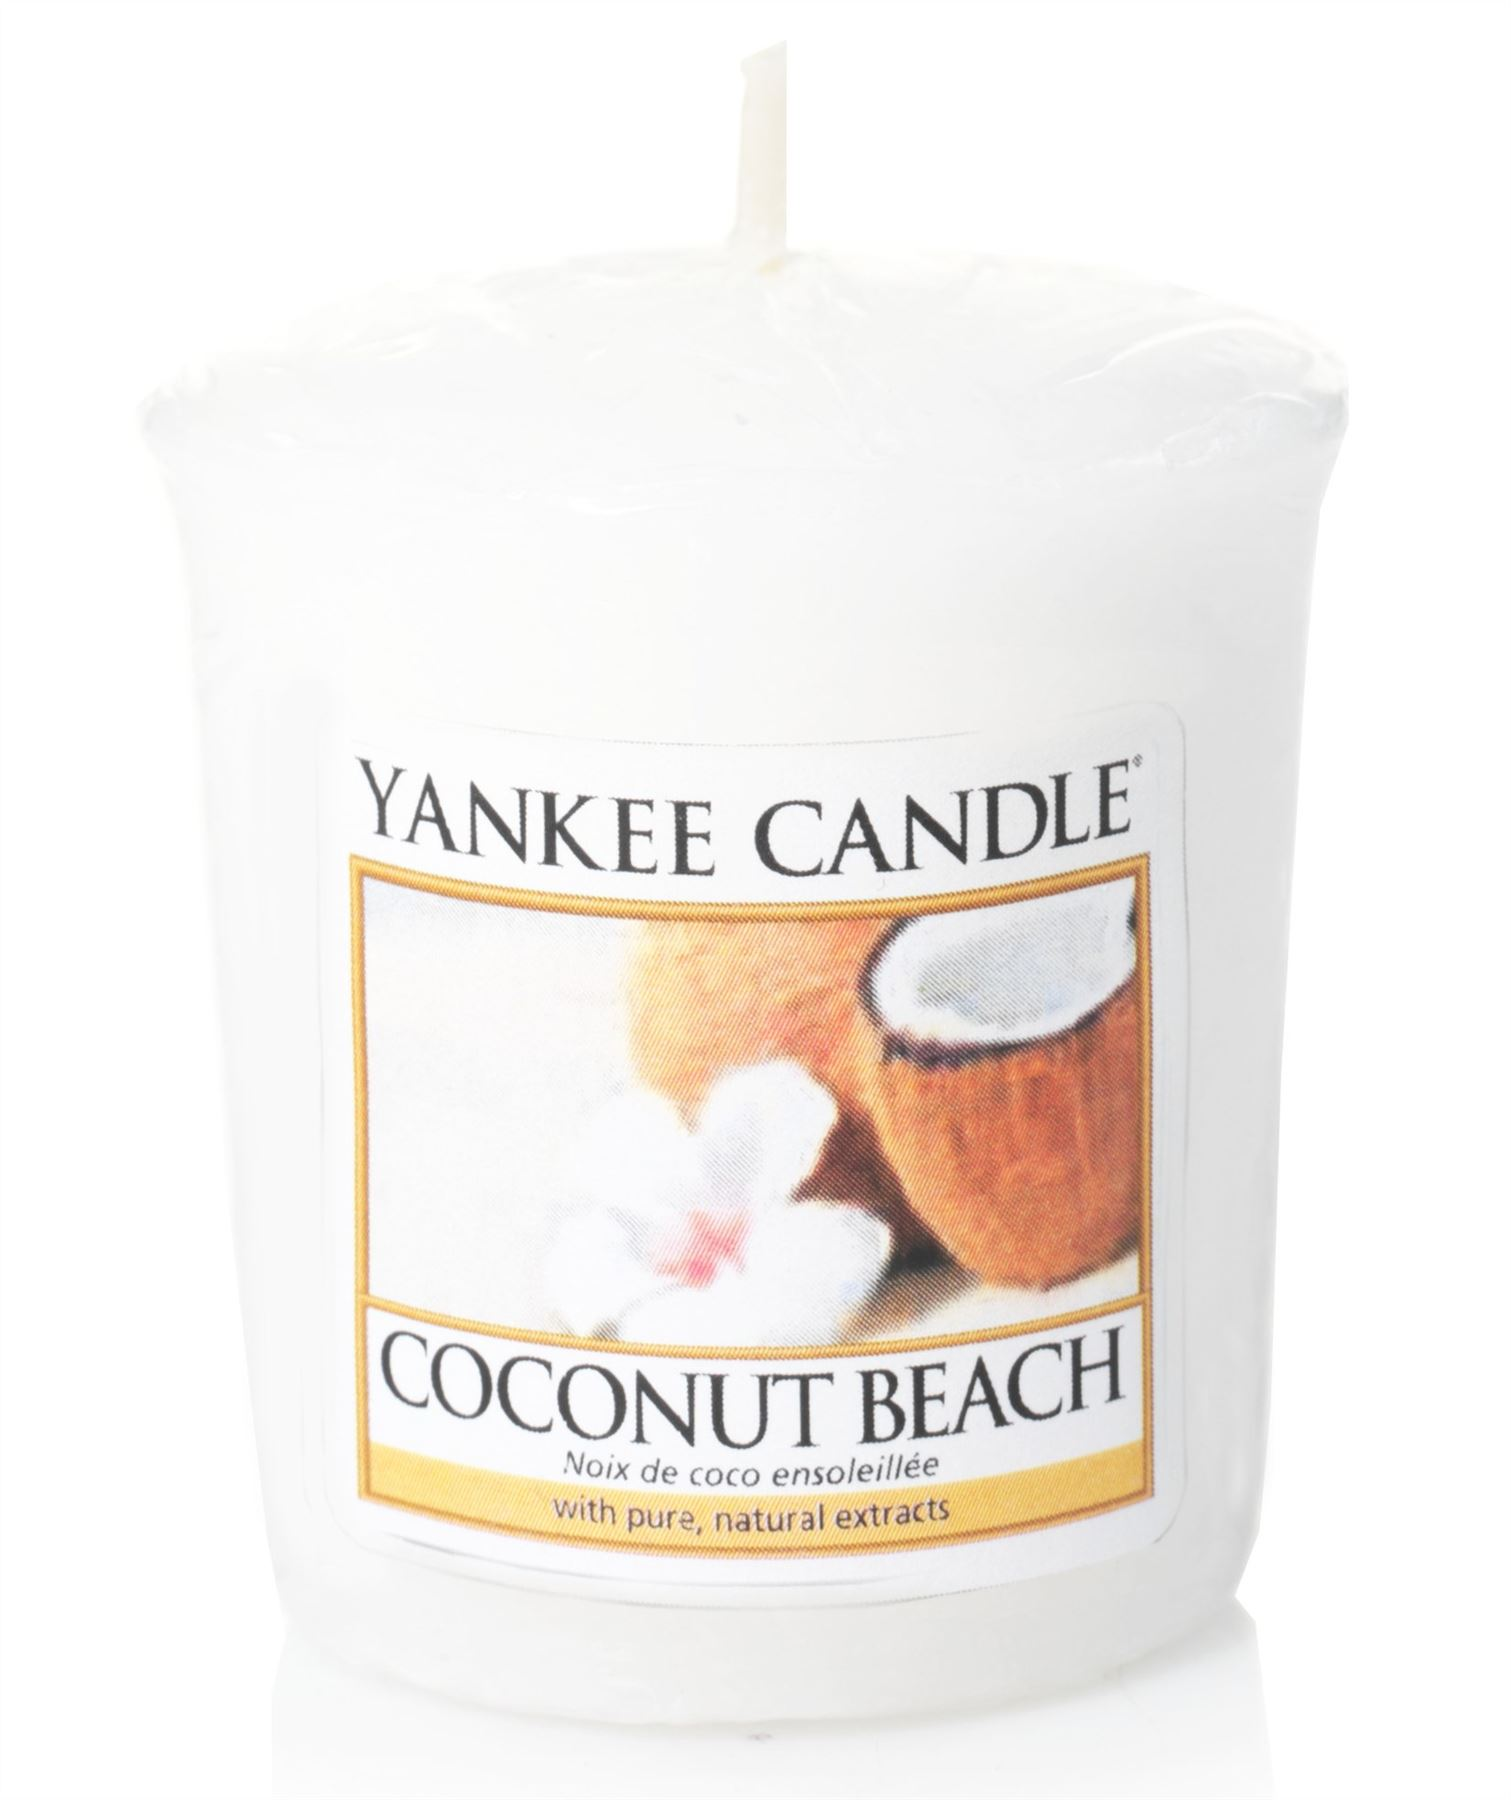 Yankee Candle Sale Votive Sampler Candles Reduced and ...